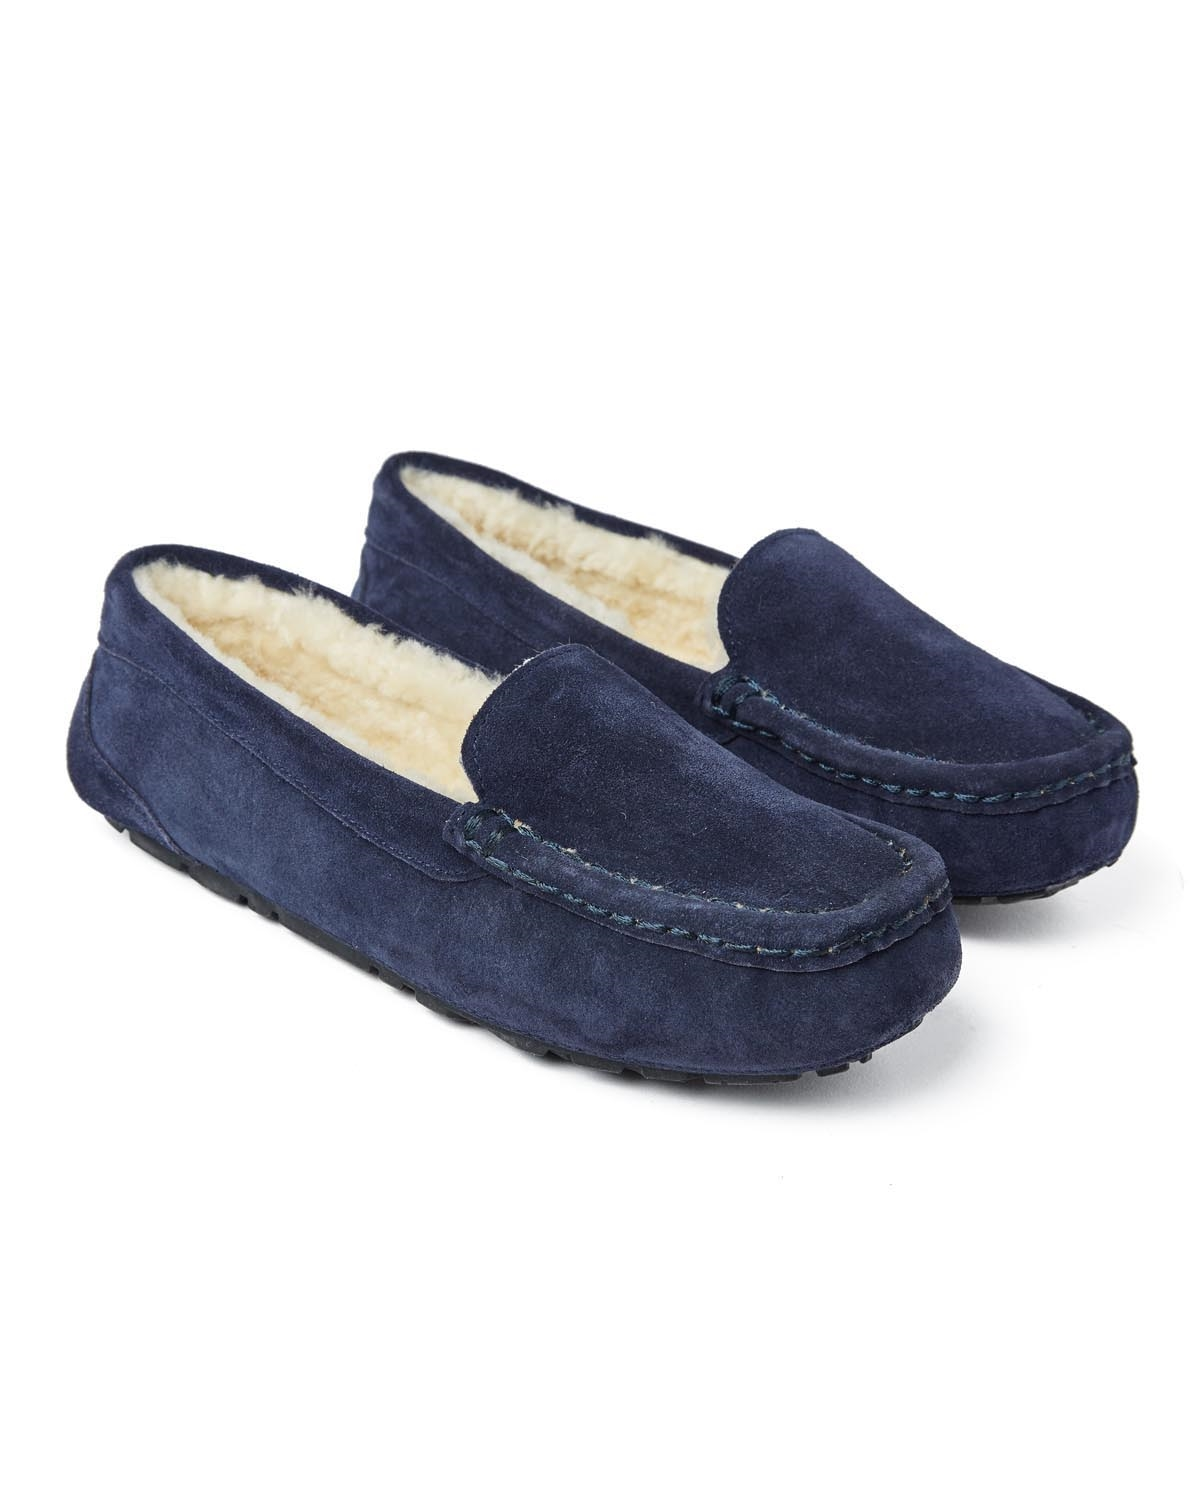 l loafer navy pair.jpg